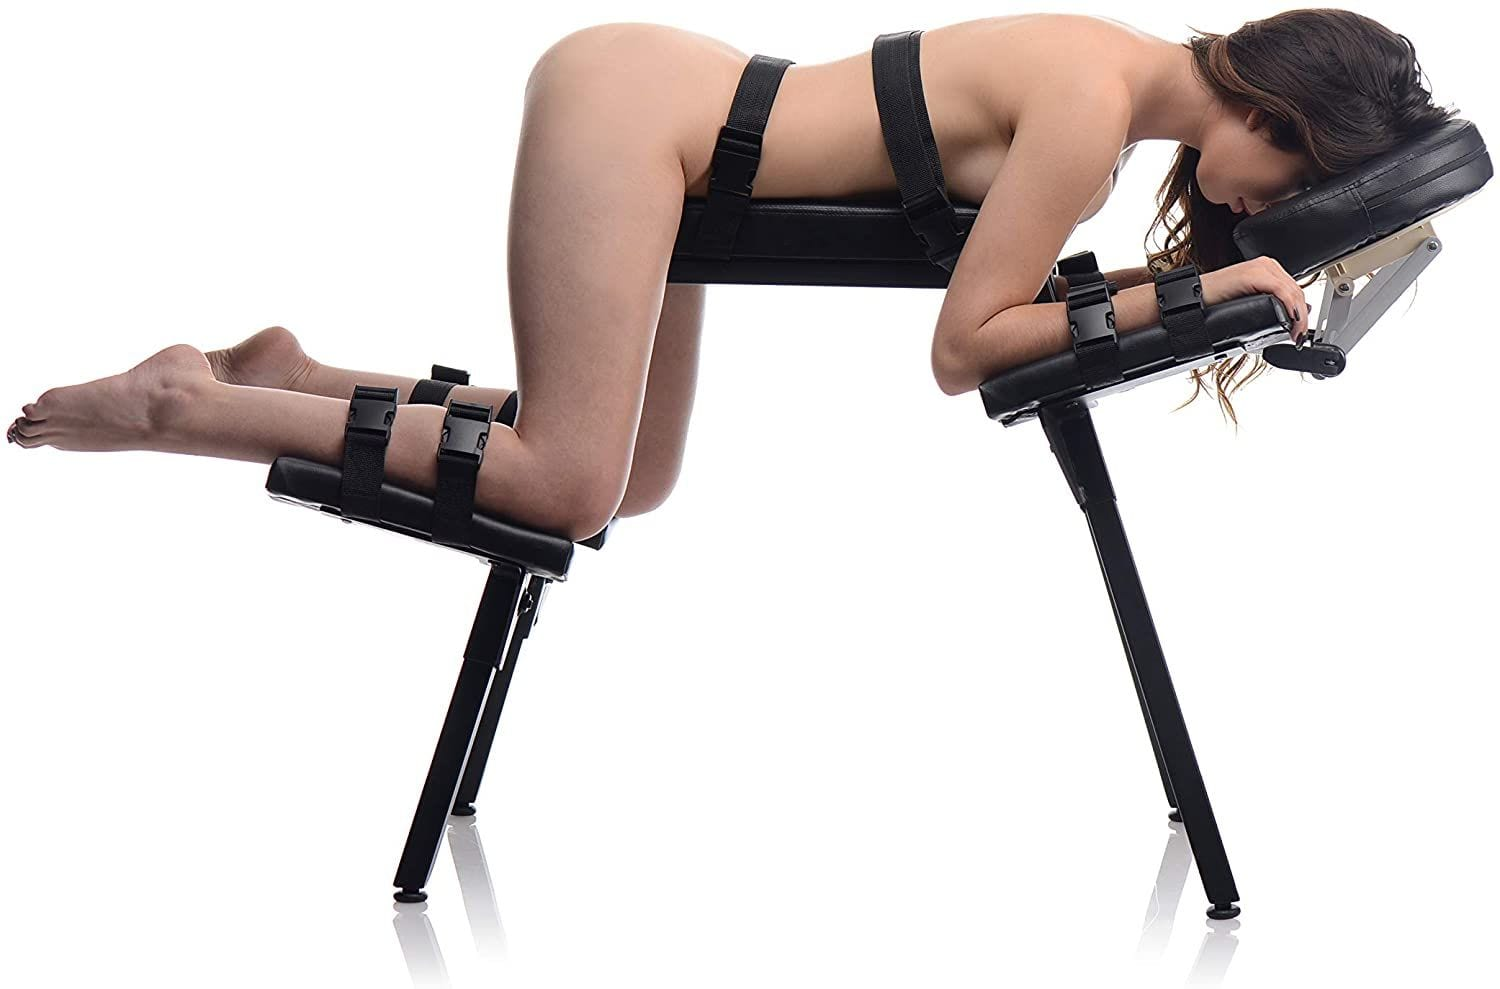 Master Series Obedience Series Extreme Sex Bench girl strapped